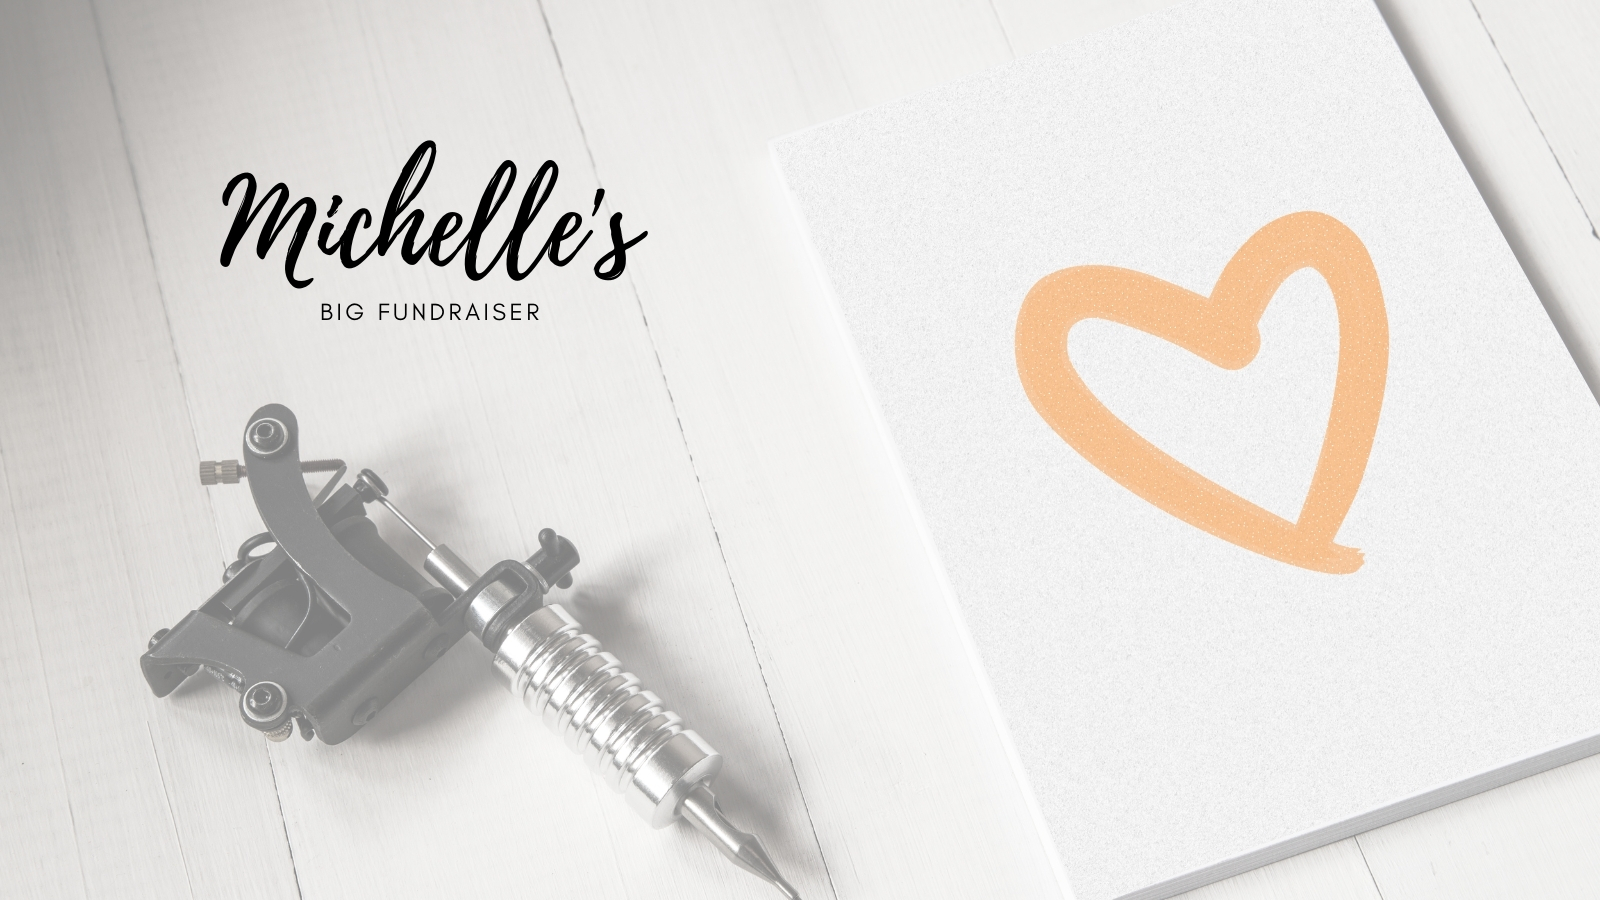 Titled Michelle's big fundraiser, with a tattoo gun and the big orange heart logo